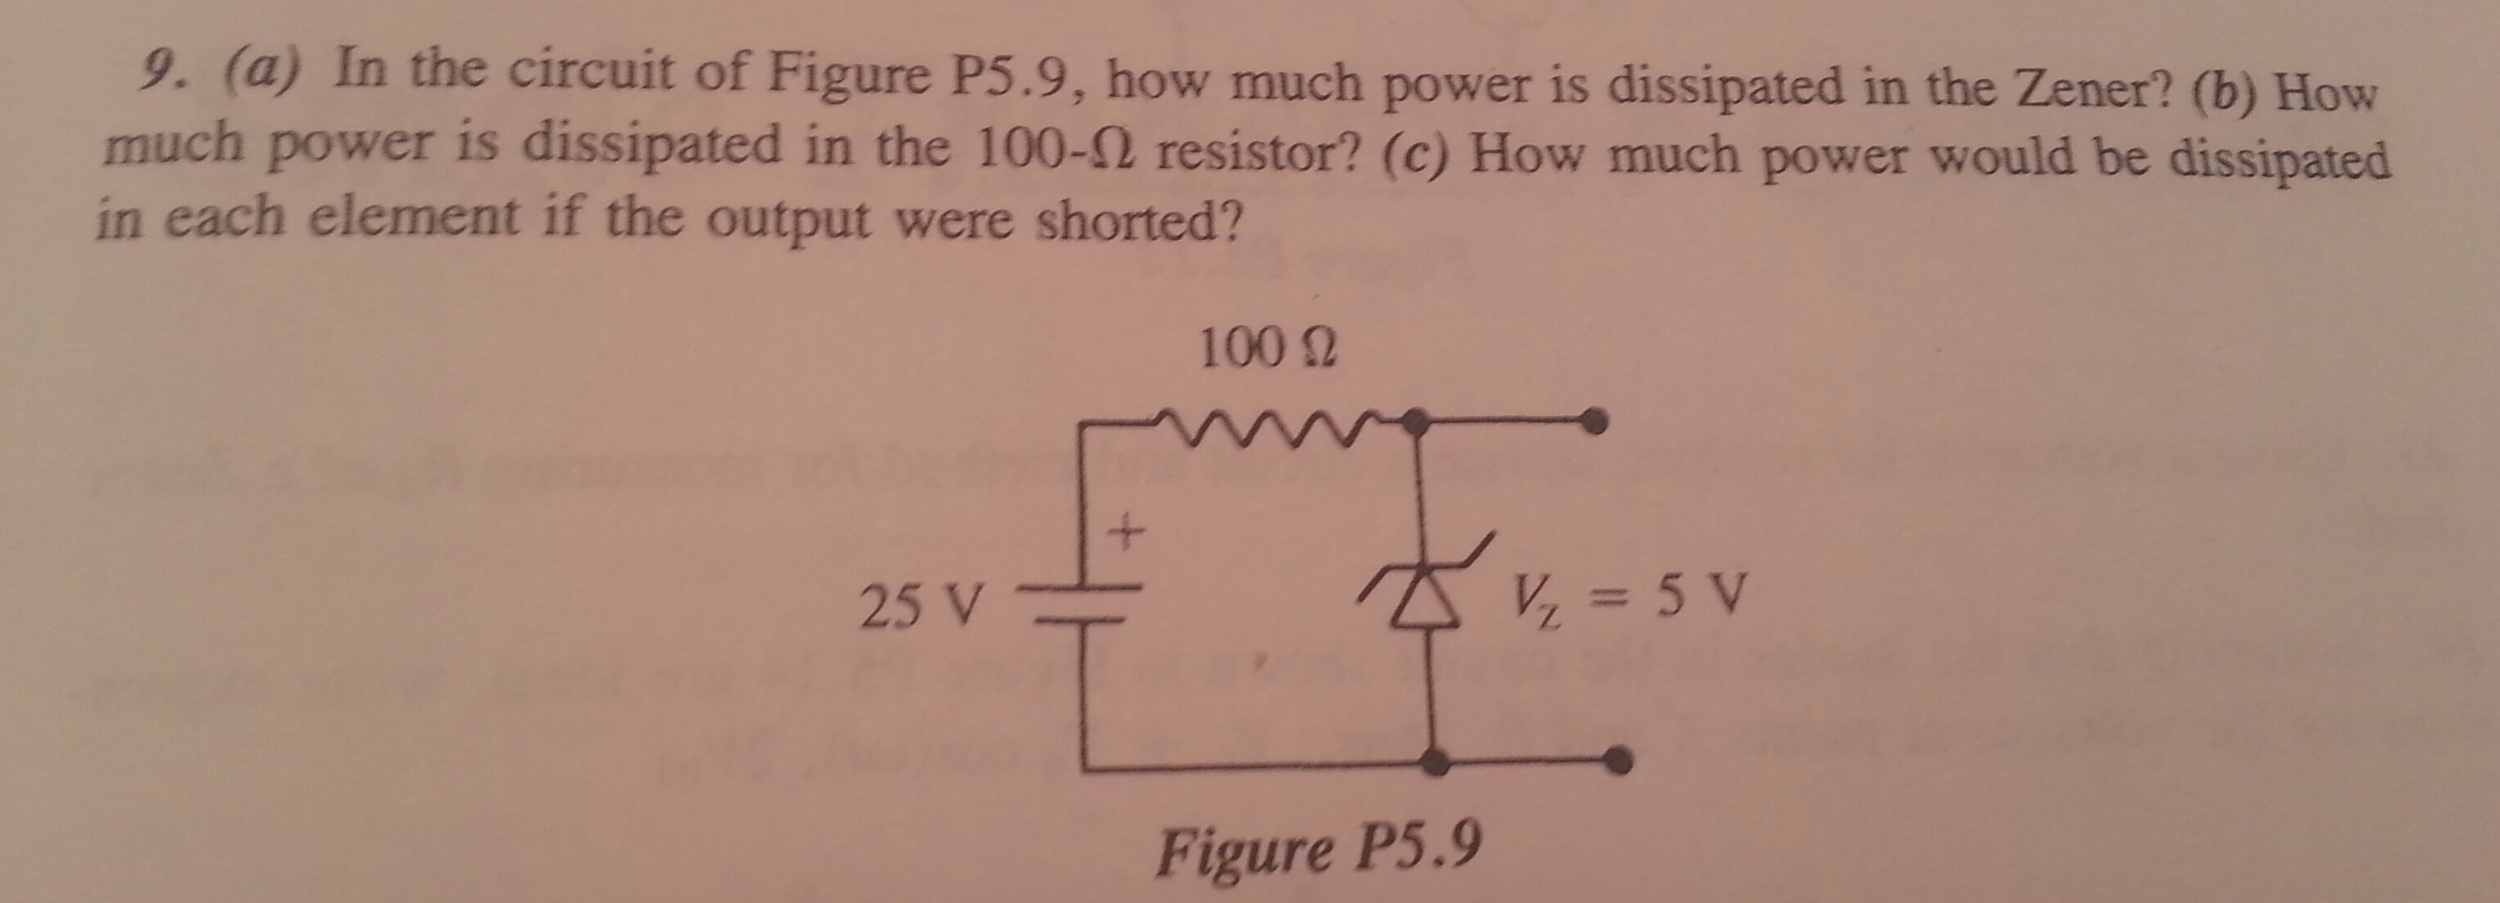 In the circuit of Figure P5.9, how much power is d